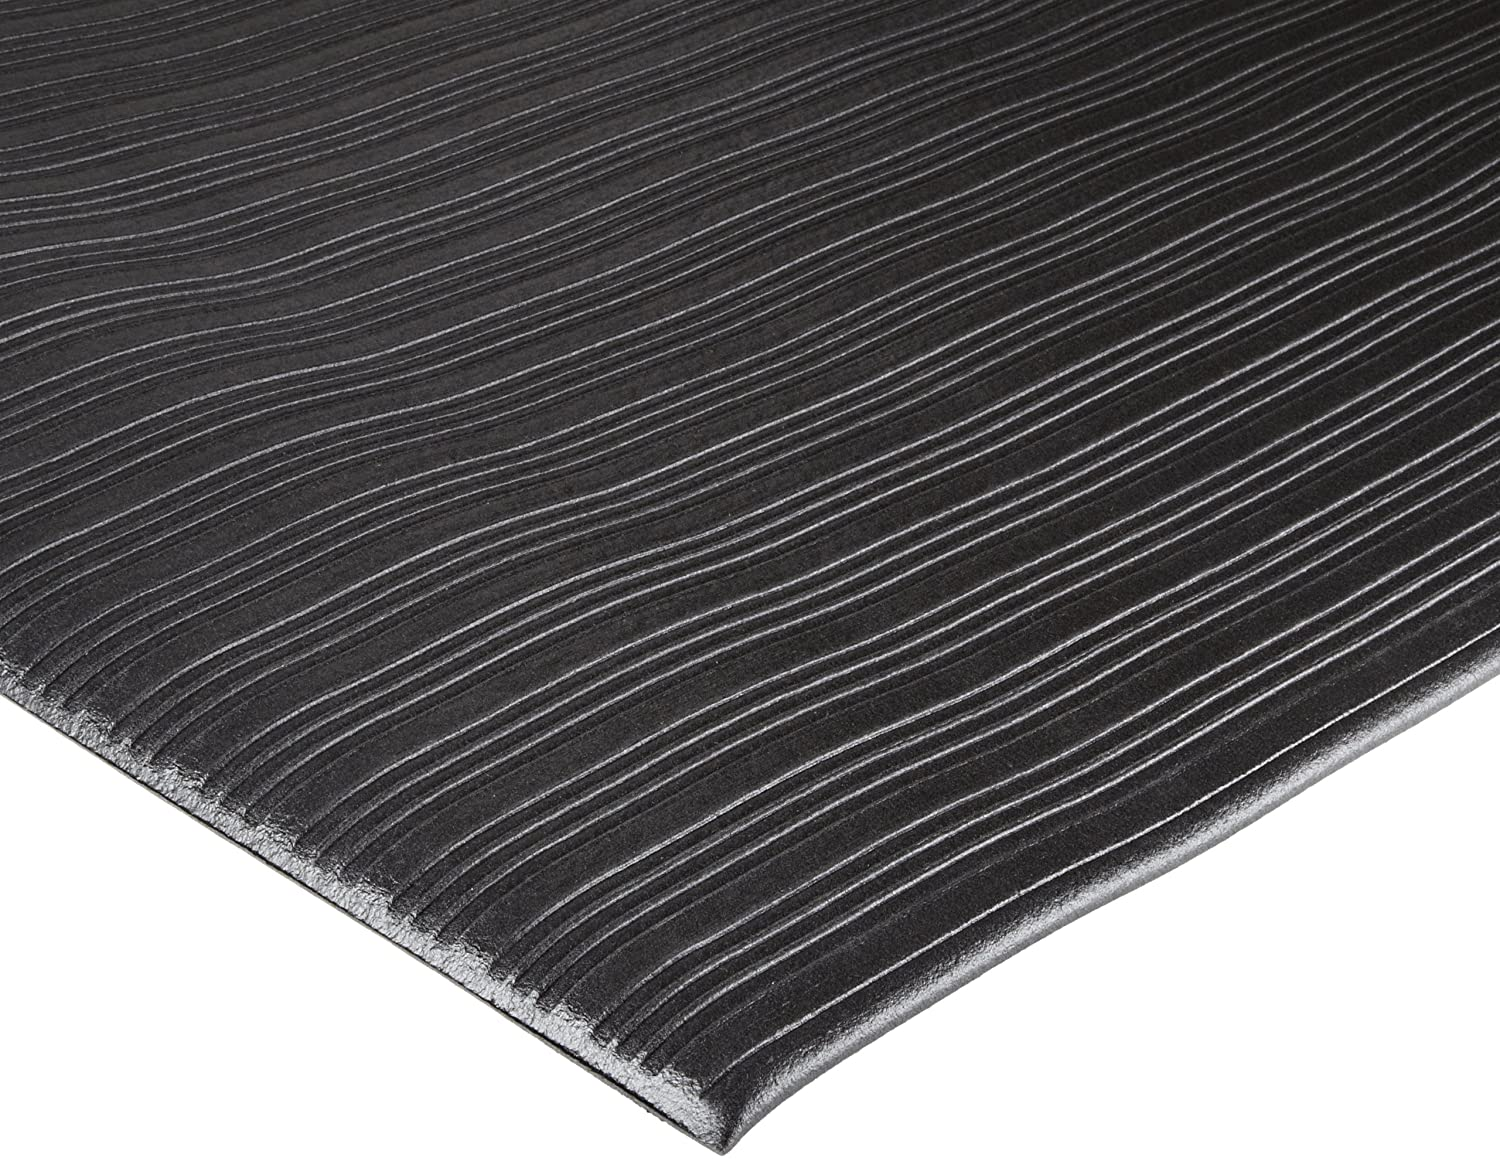 Durable Sof-Spun Standard Anti-Fatigue Floor Mat, 27 Width x 60 Length x 3/8 Thickness, Black Durable Corporation 575S2760BK